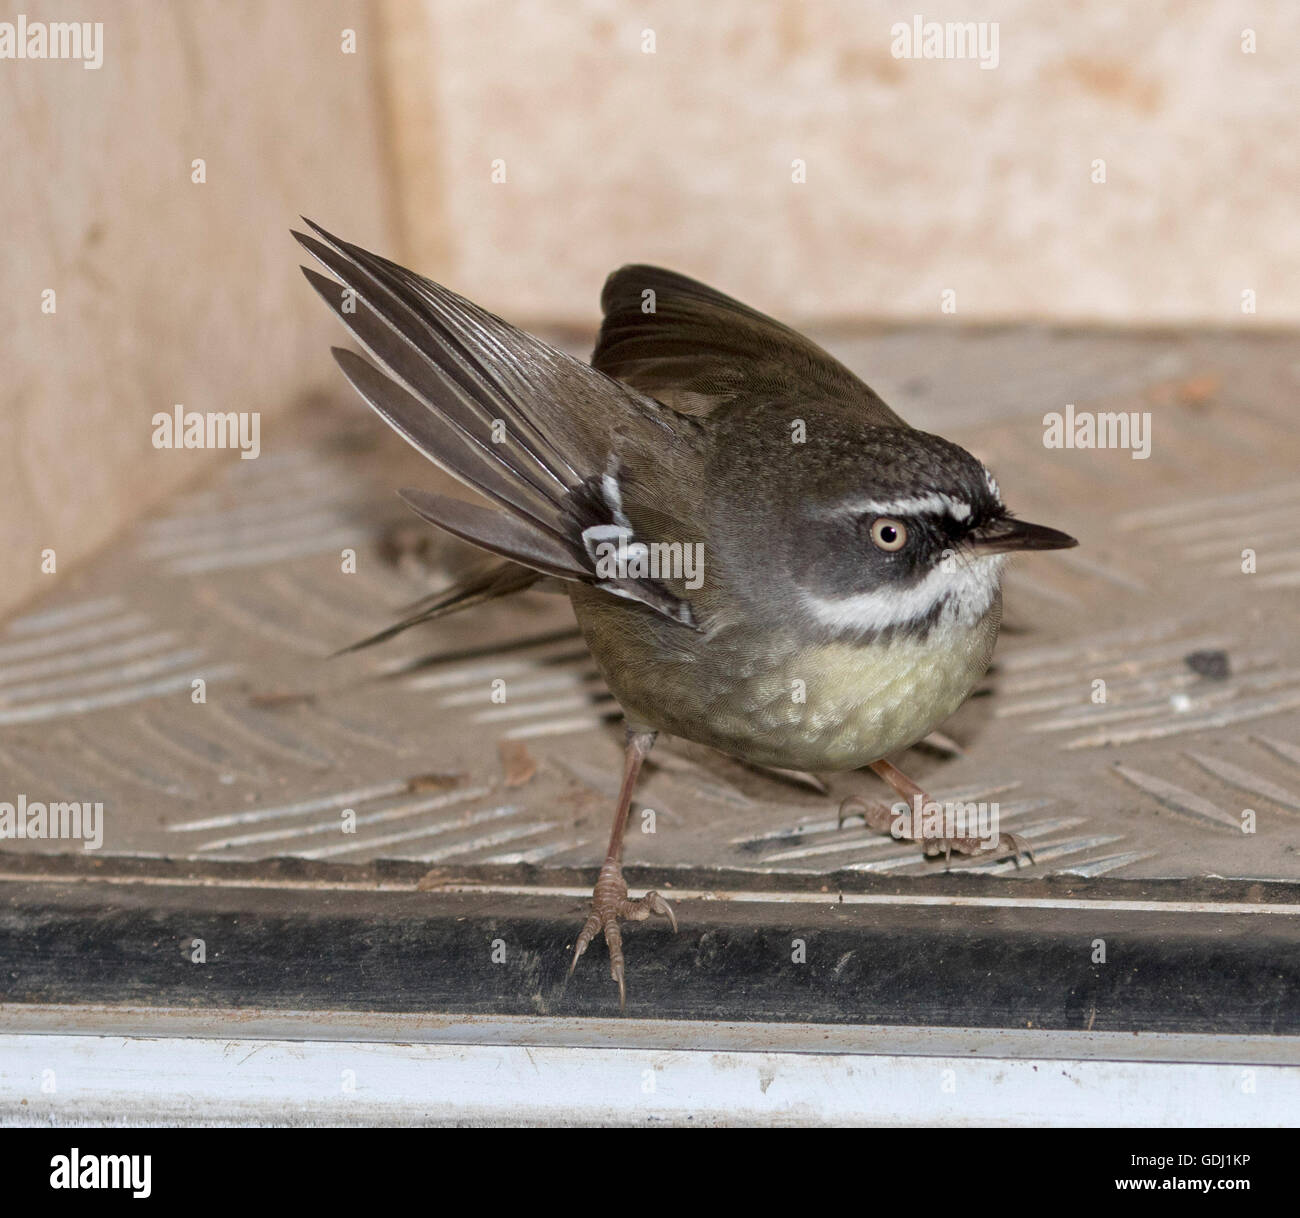 Attractive white-browed scrubwren Sericornus frontalis with bright eye and wing outstretched on step of campervan - Stock Image